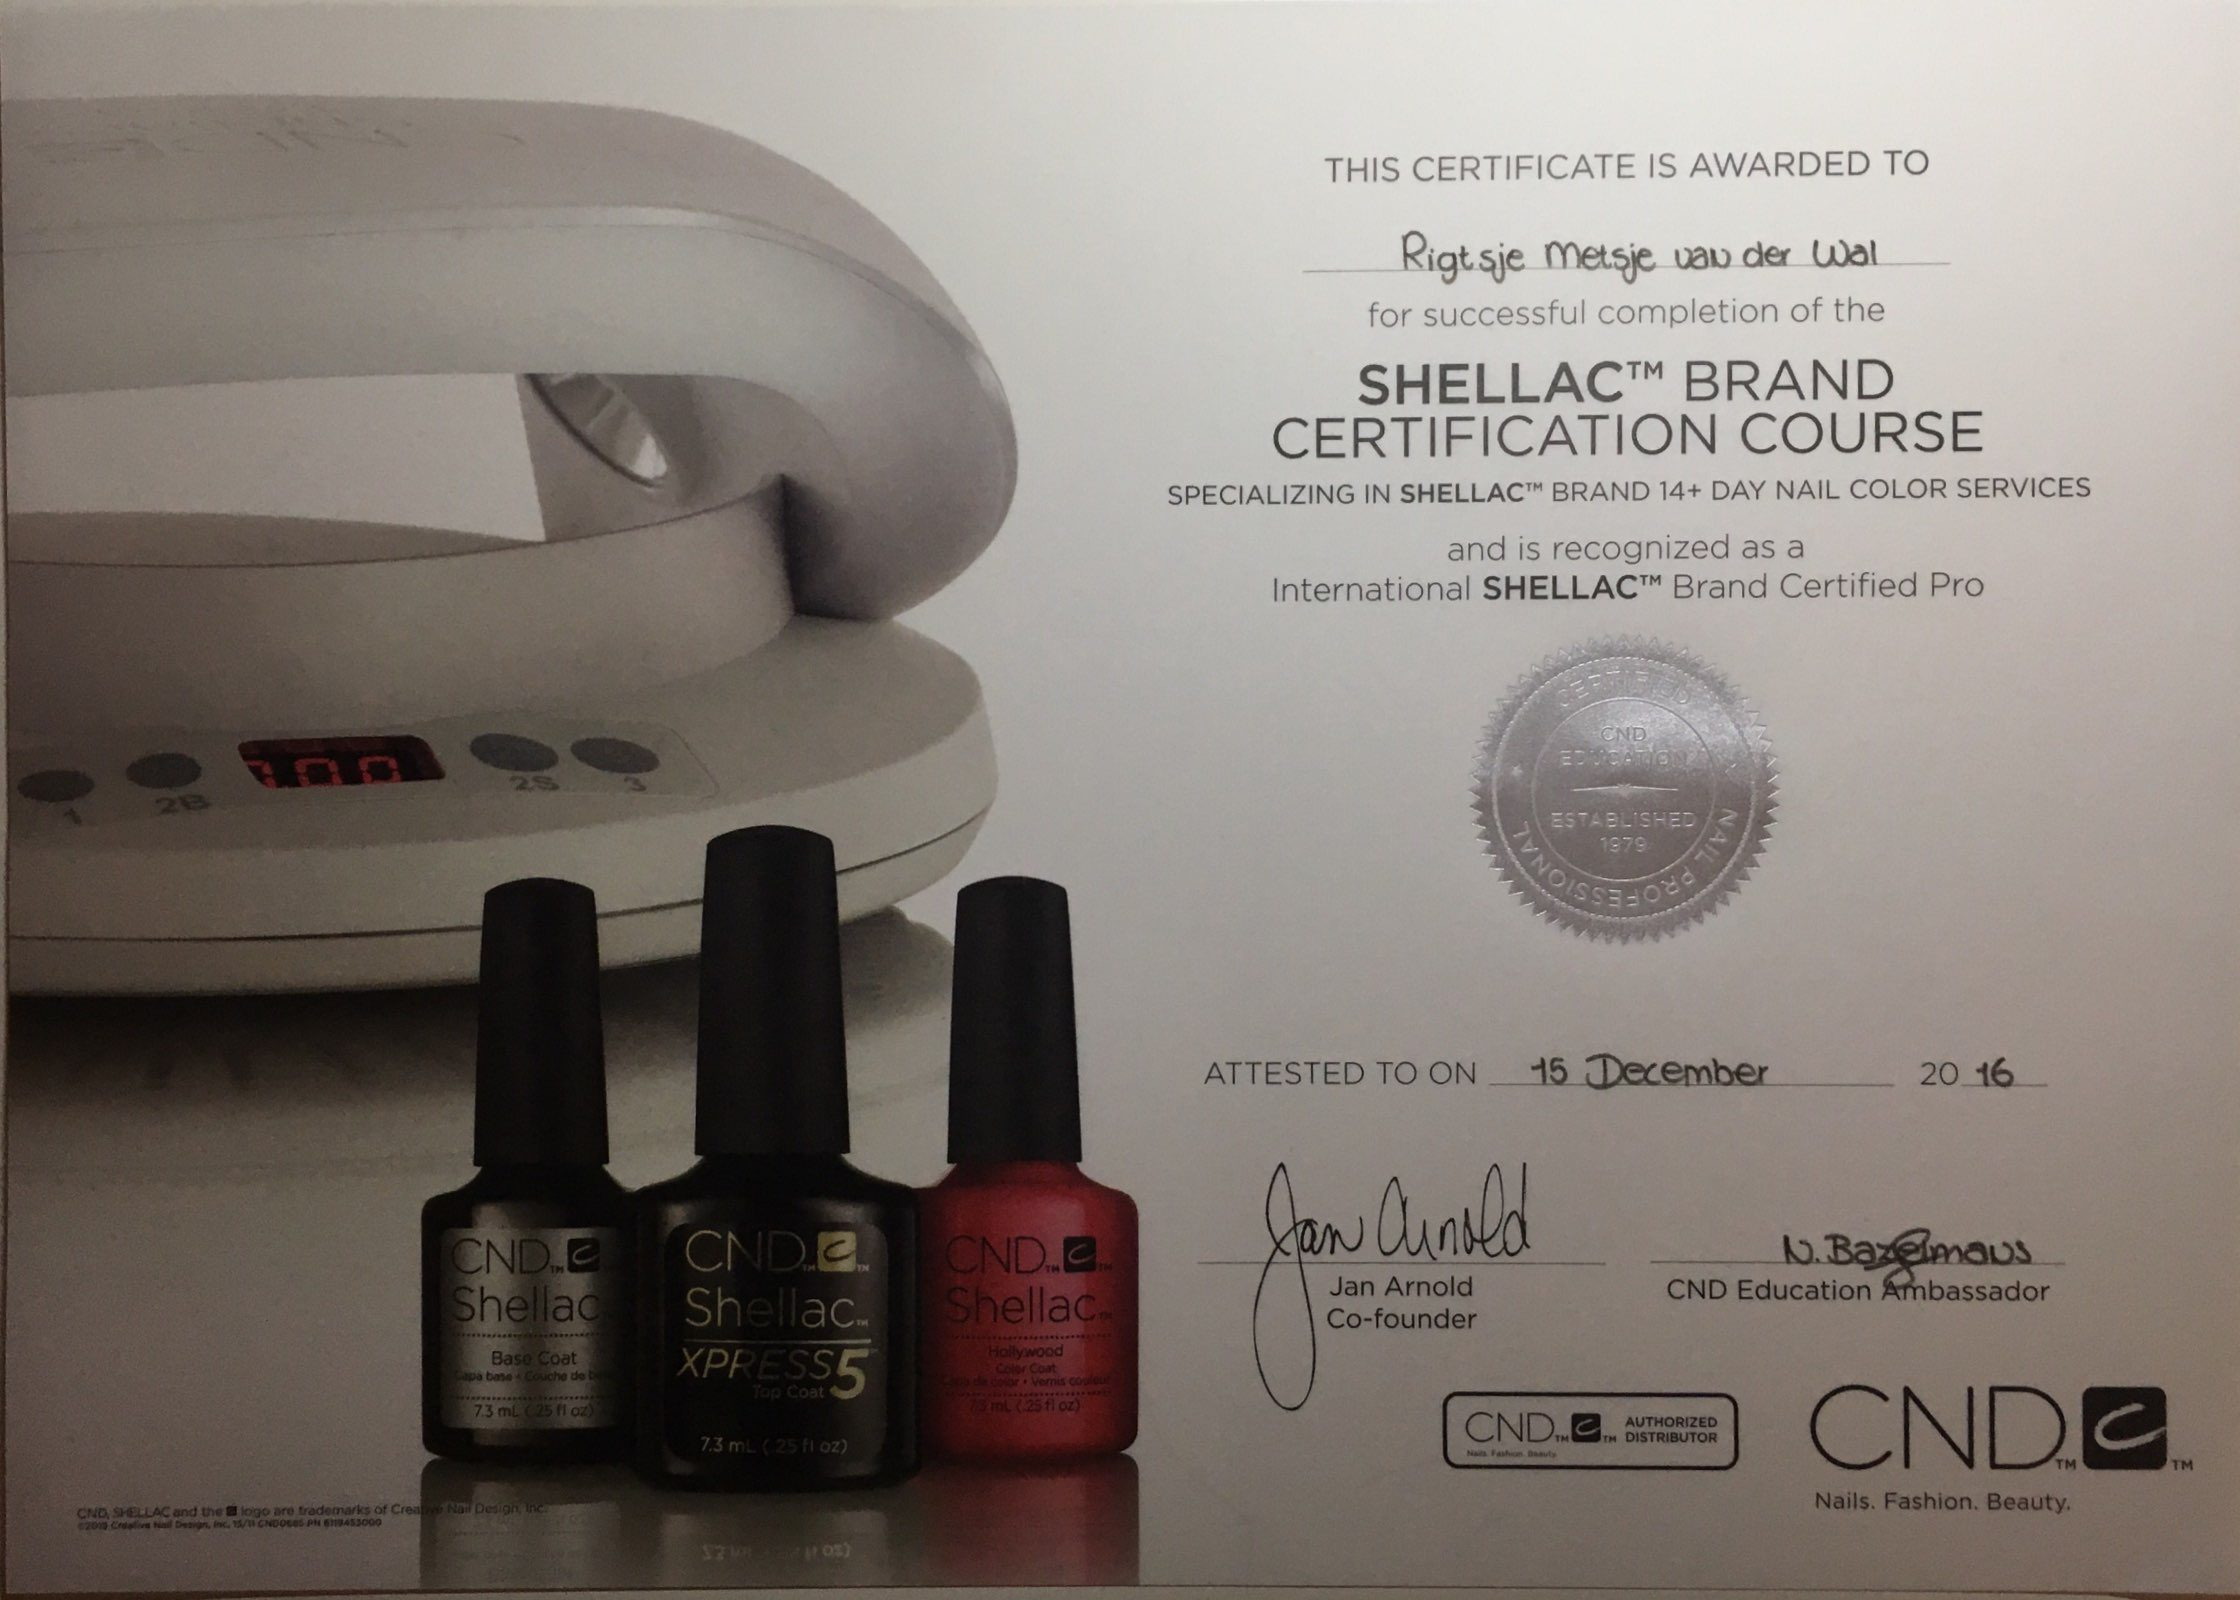 Shellac Brand Certification